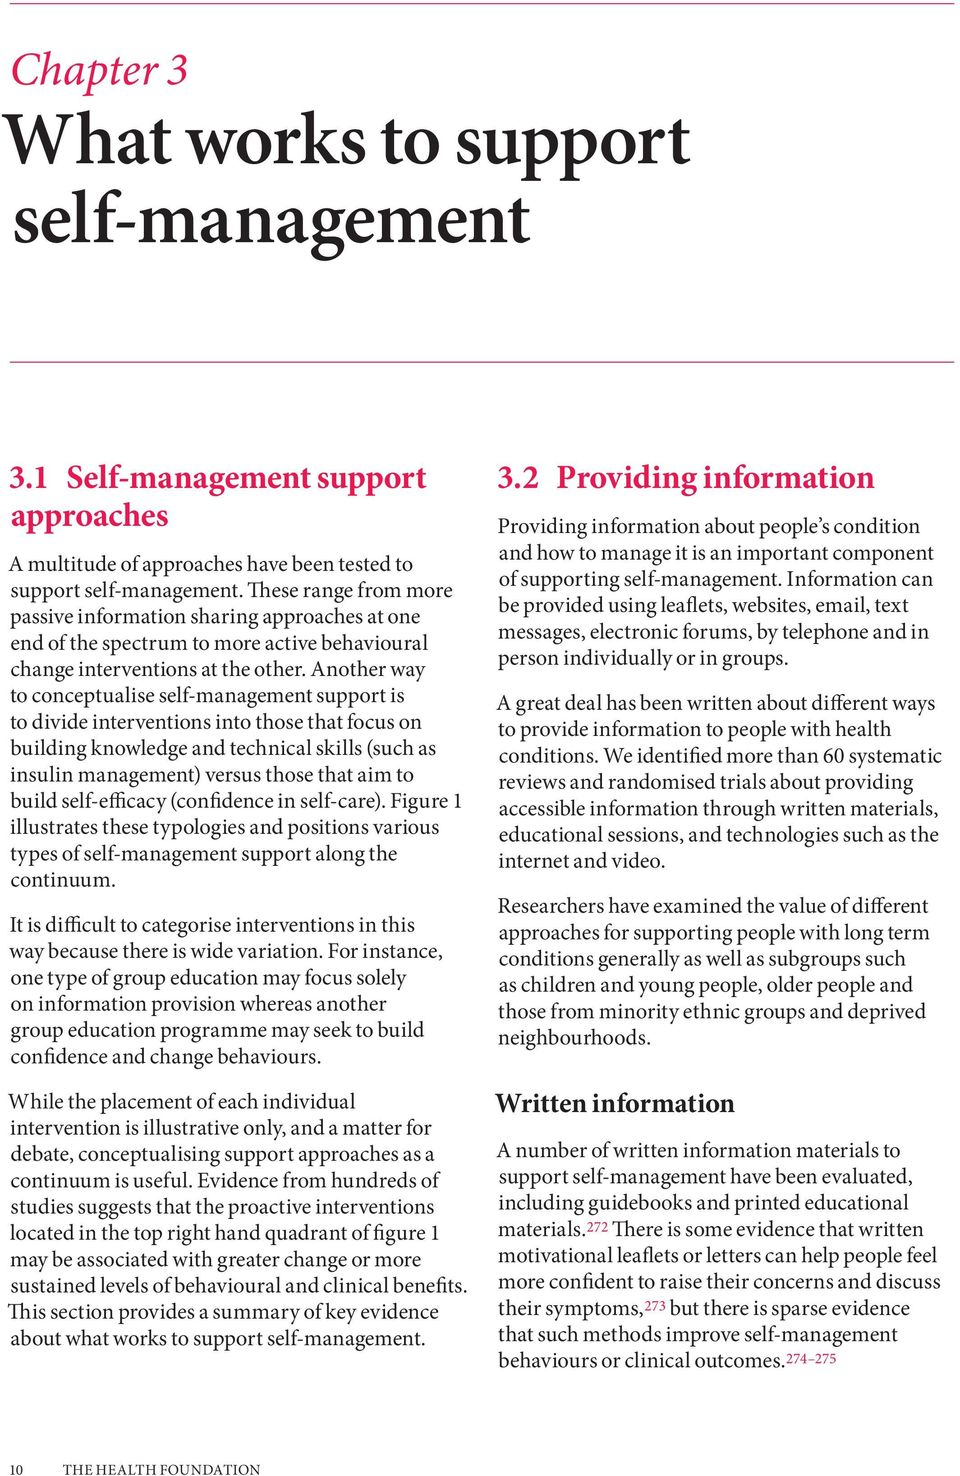 Another way to conceptualise self-management support is to divide interventions into those that focus on building knowledge and technical skills (such as insulin management) versus those that aim to